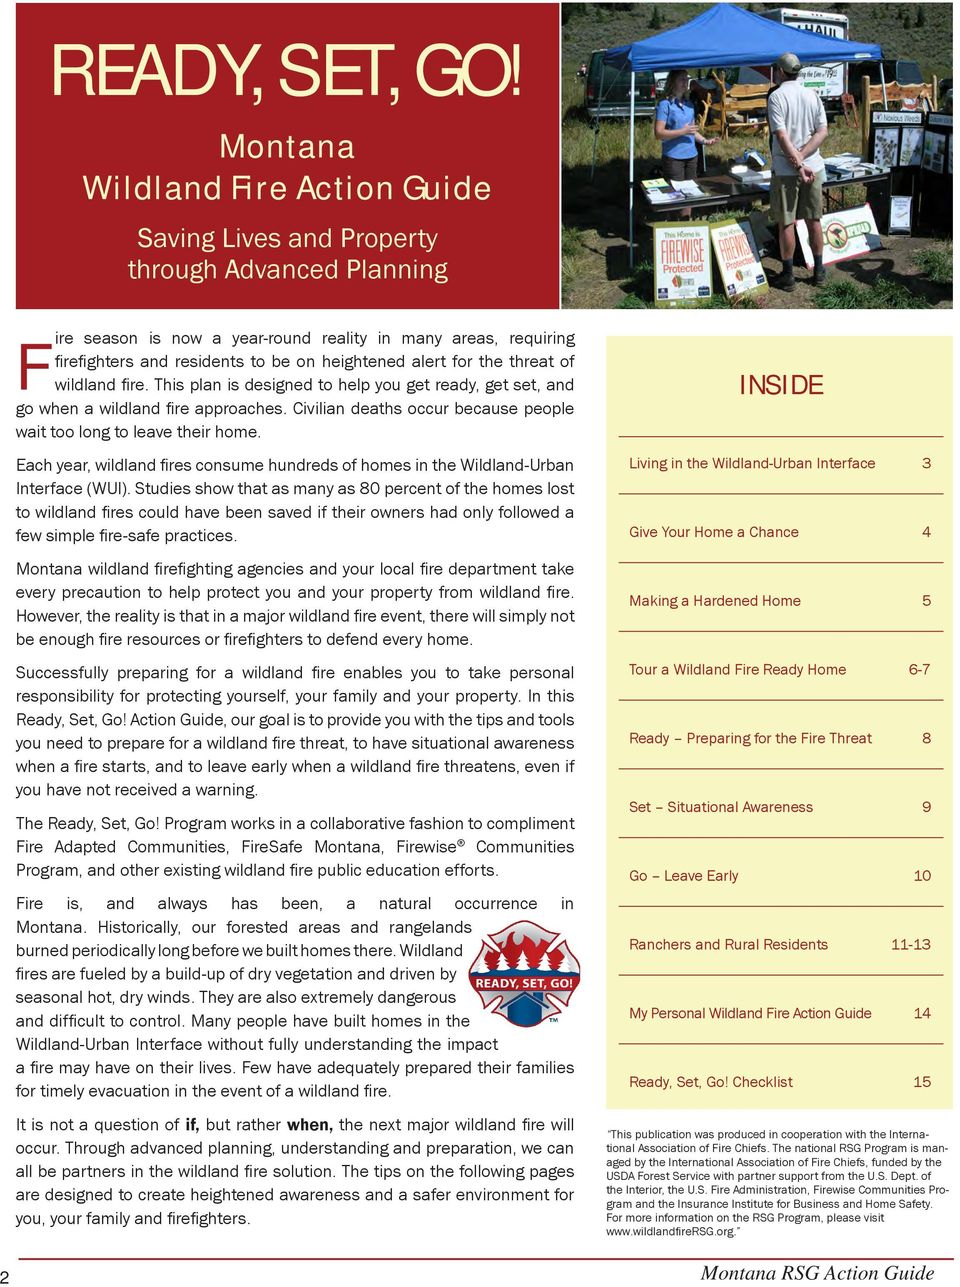 heightened alert for the threat of wildland fire. This plan is designed to help you get ready, get set, and go when a wildland fire approaches.